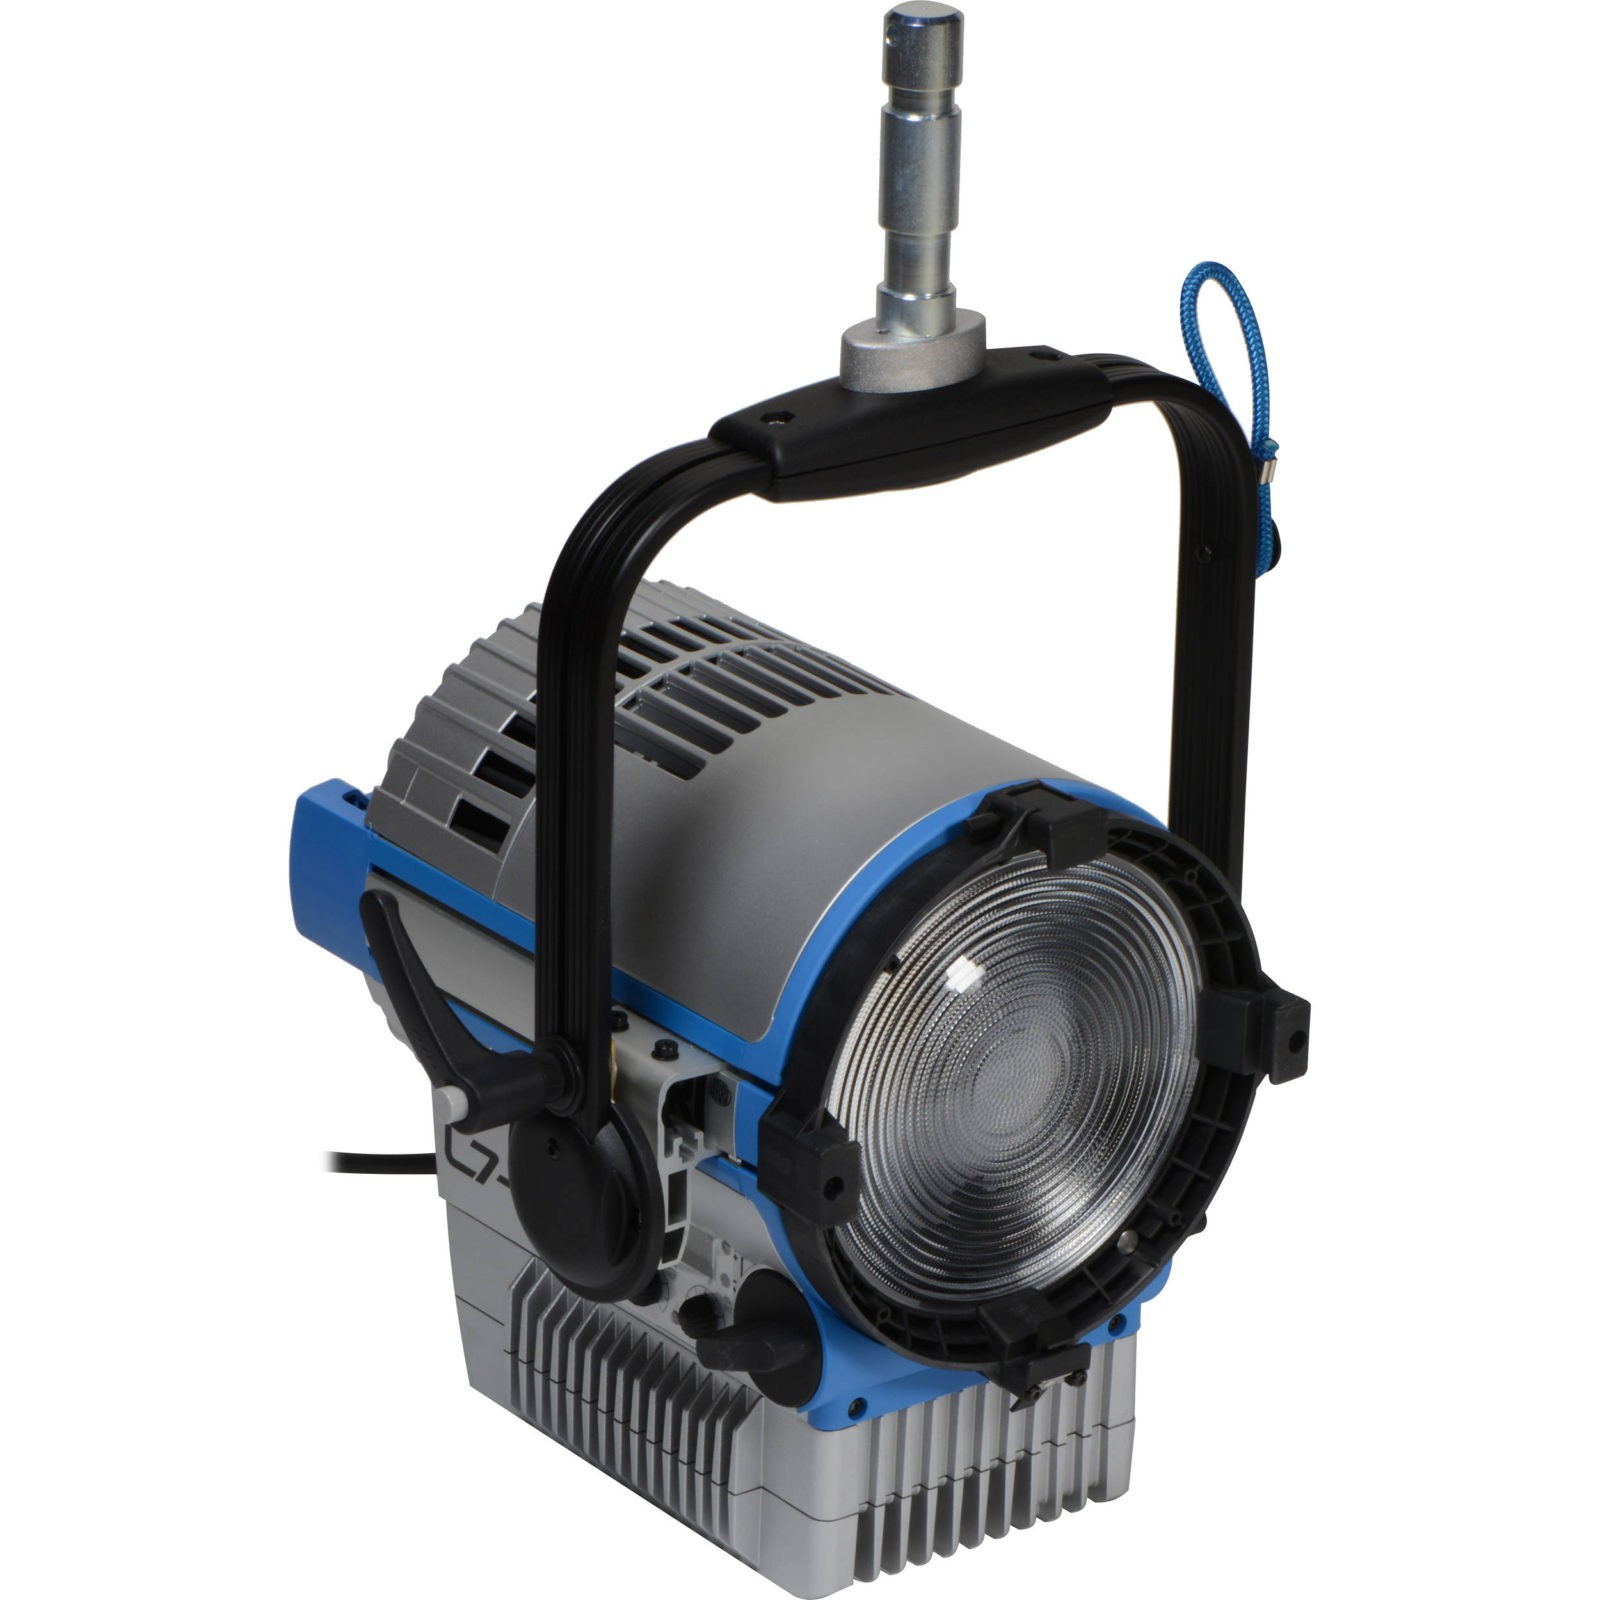 Arri L7-C LED Fresnel Light Rentals in Manhattan and Brooklyn